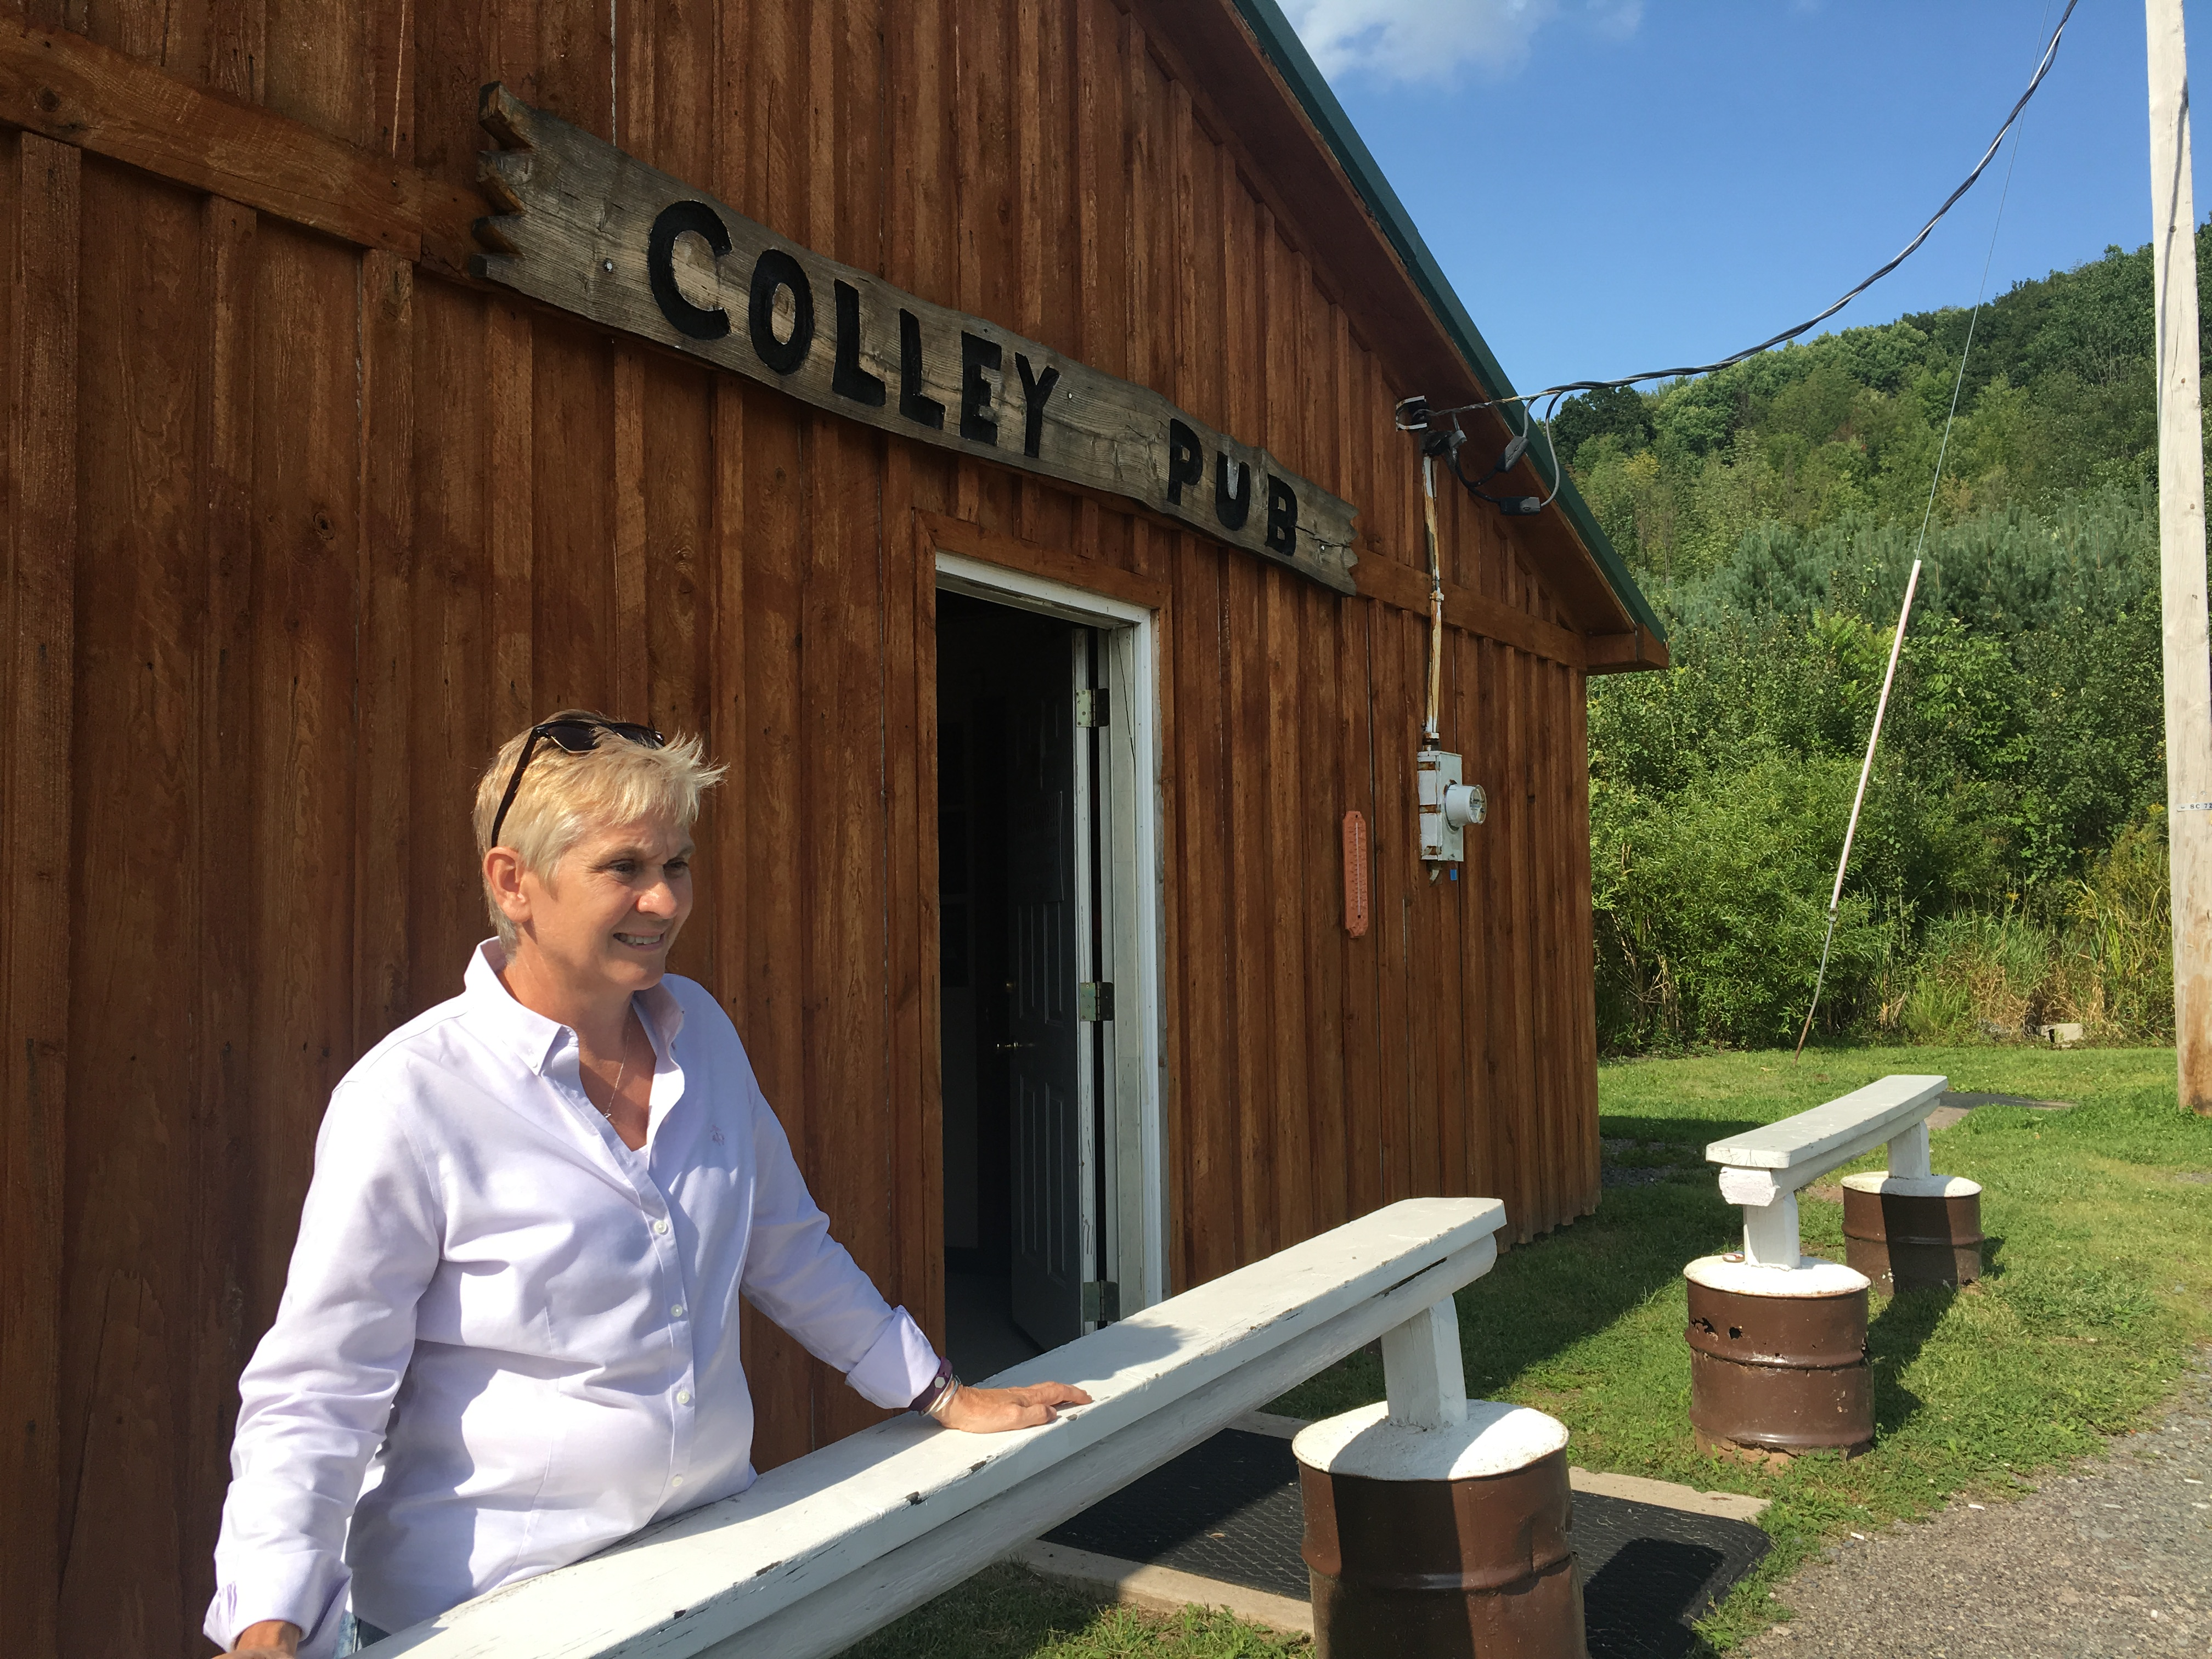 Donna Iannone, a Sullivan County commissioner. said she doesnt mind that theres no cell or internet service at her business, The Colley Pub, but shes still fighting to improve connections for others in the rural county.